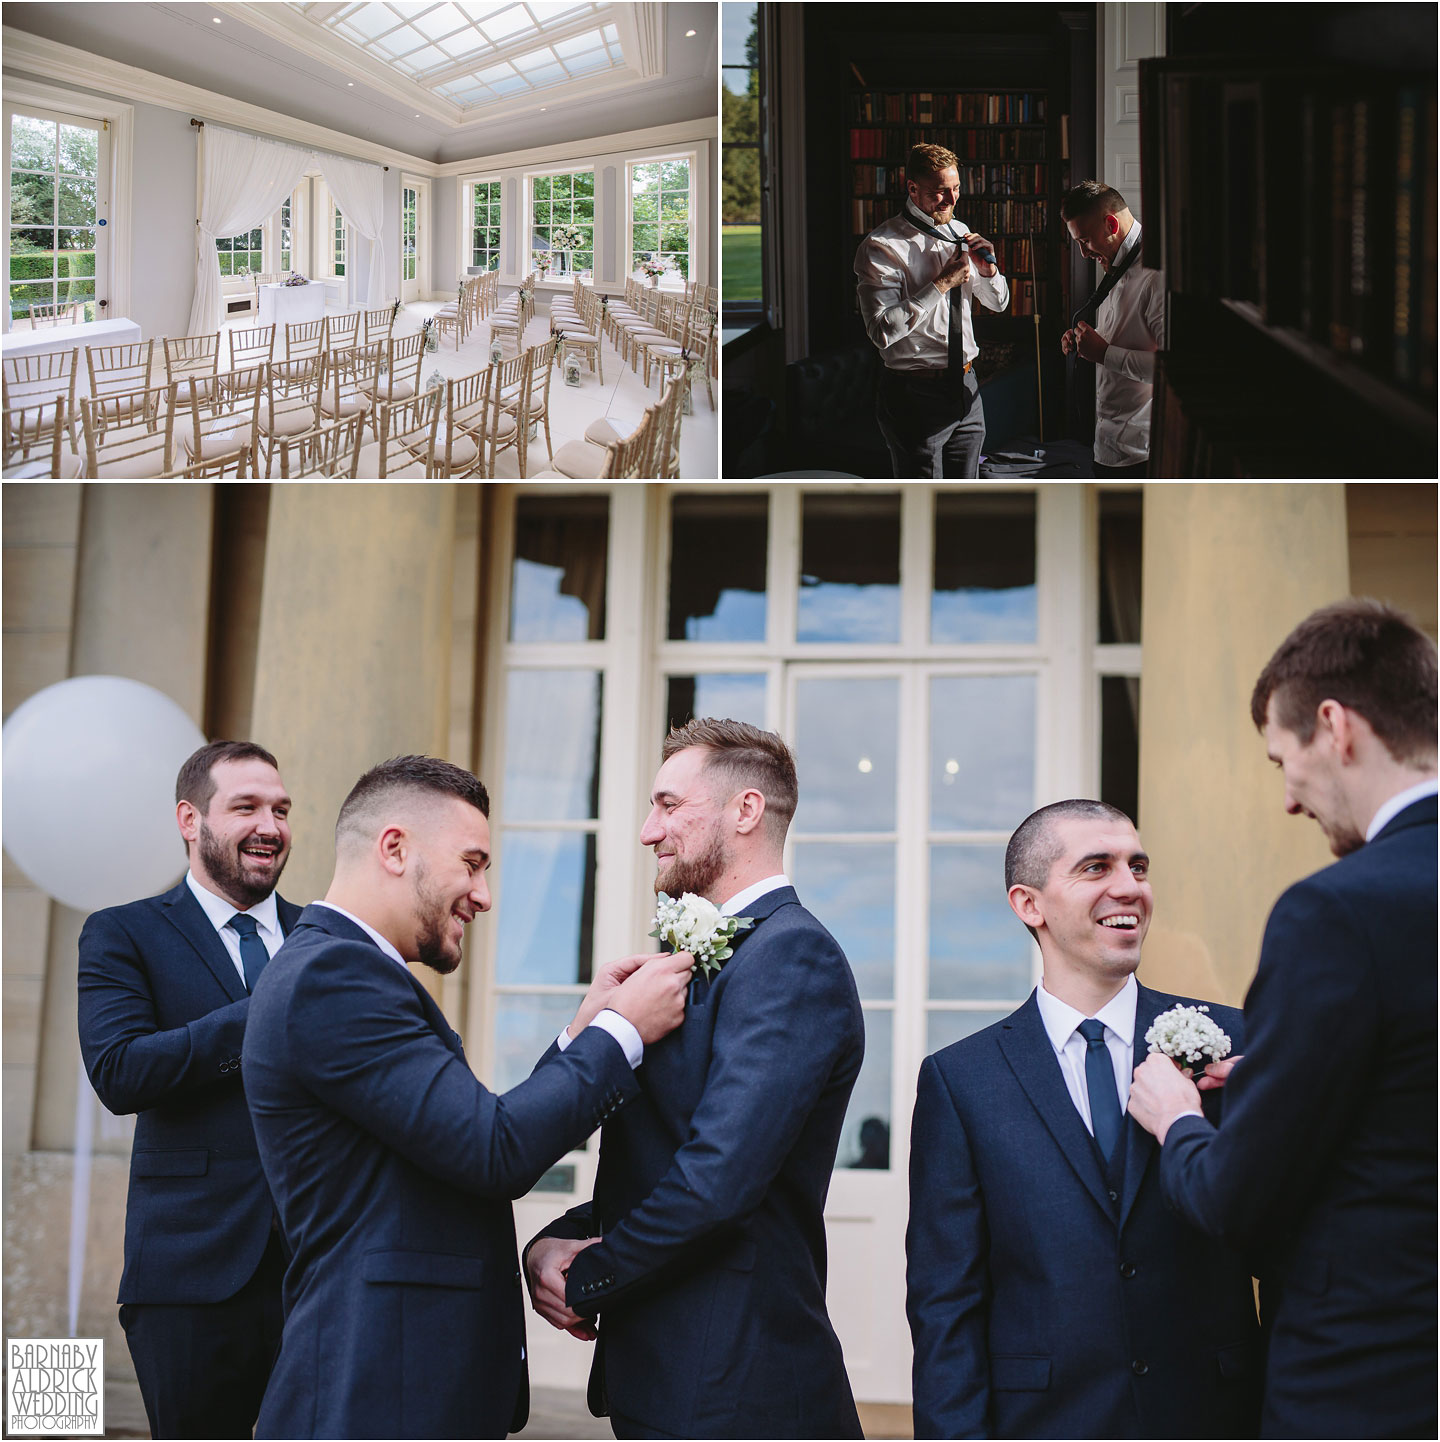 Groomsmen preparation photos at Saltmarshe Hall near Goole in East Yorkshire, Wedding photography at Saltmarshe Hall, East Yorkshire Wedding Photographer